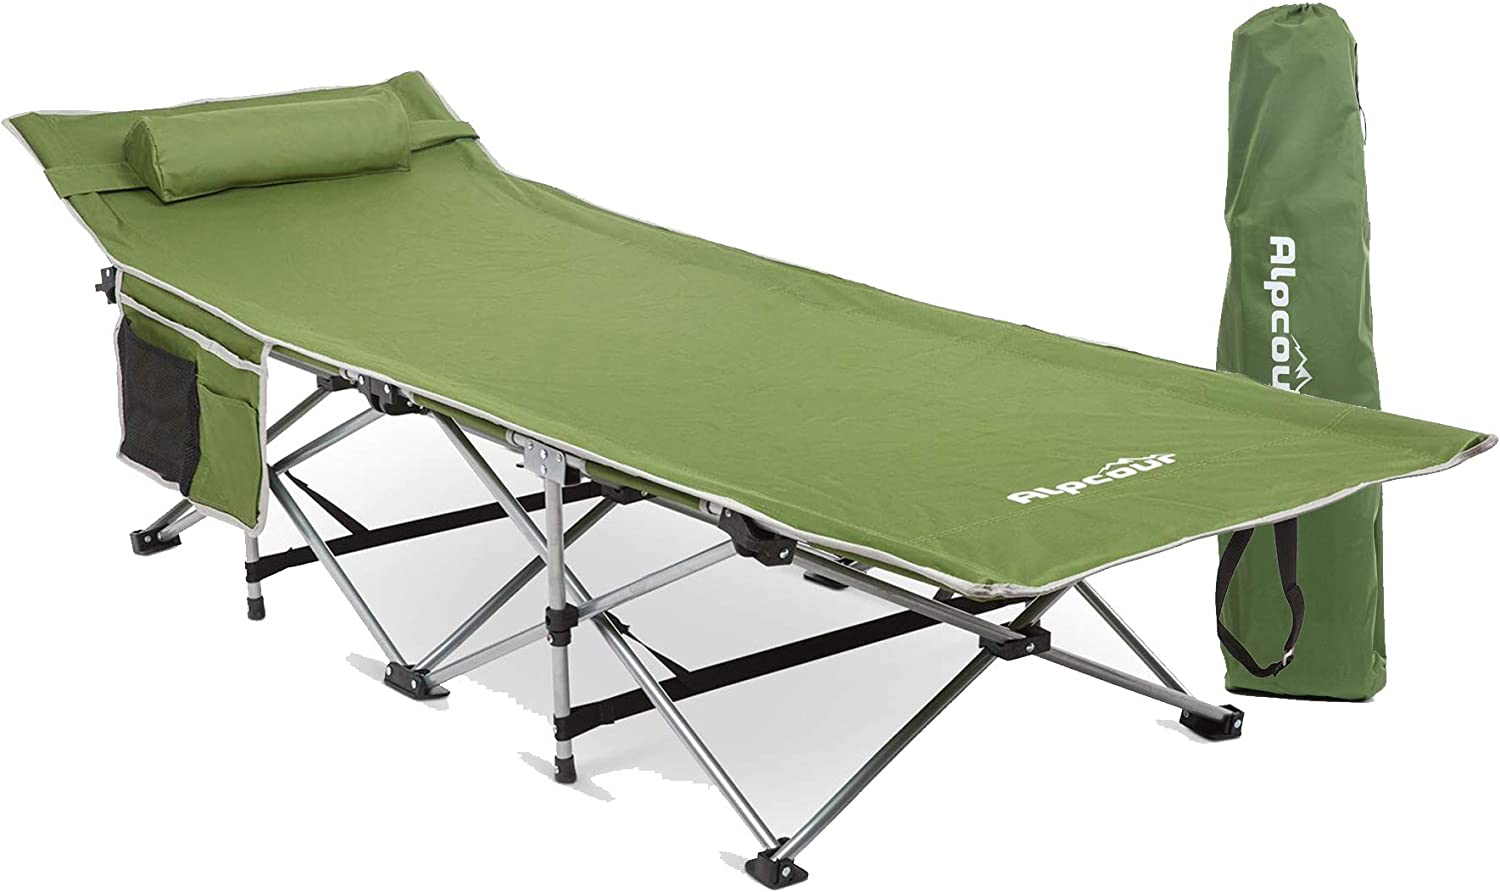 - Amazon.com: Alpcour Folding Camping Cot – Deluxe Collapsible